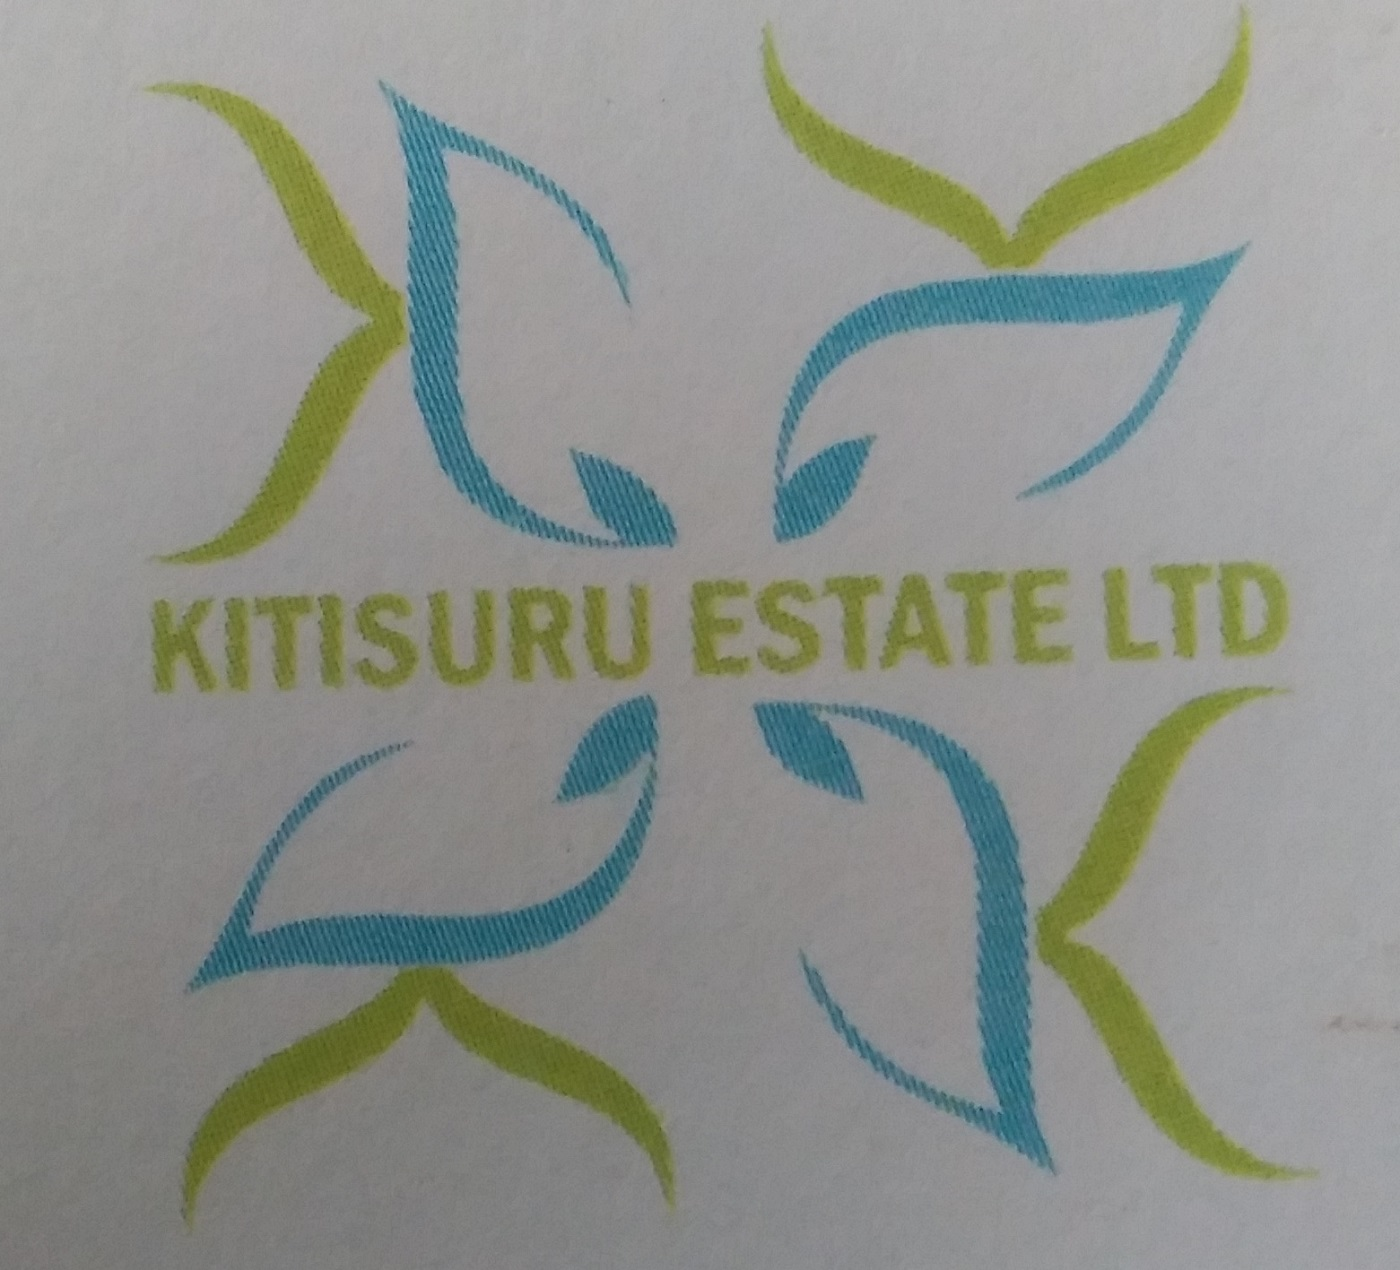 KITISURU ESTATE LTD image